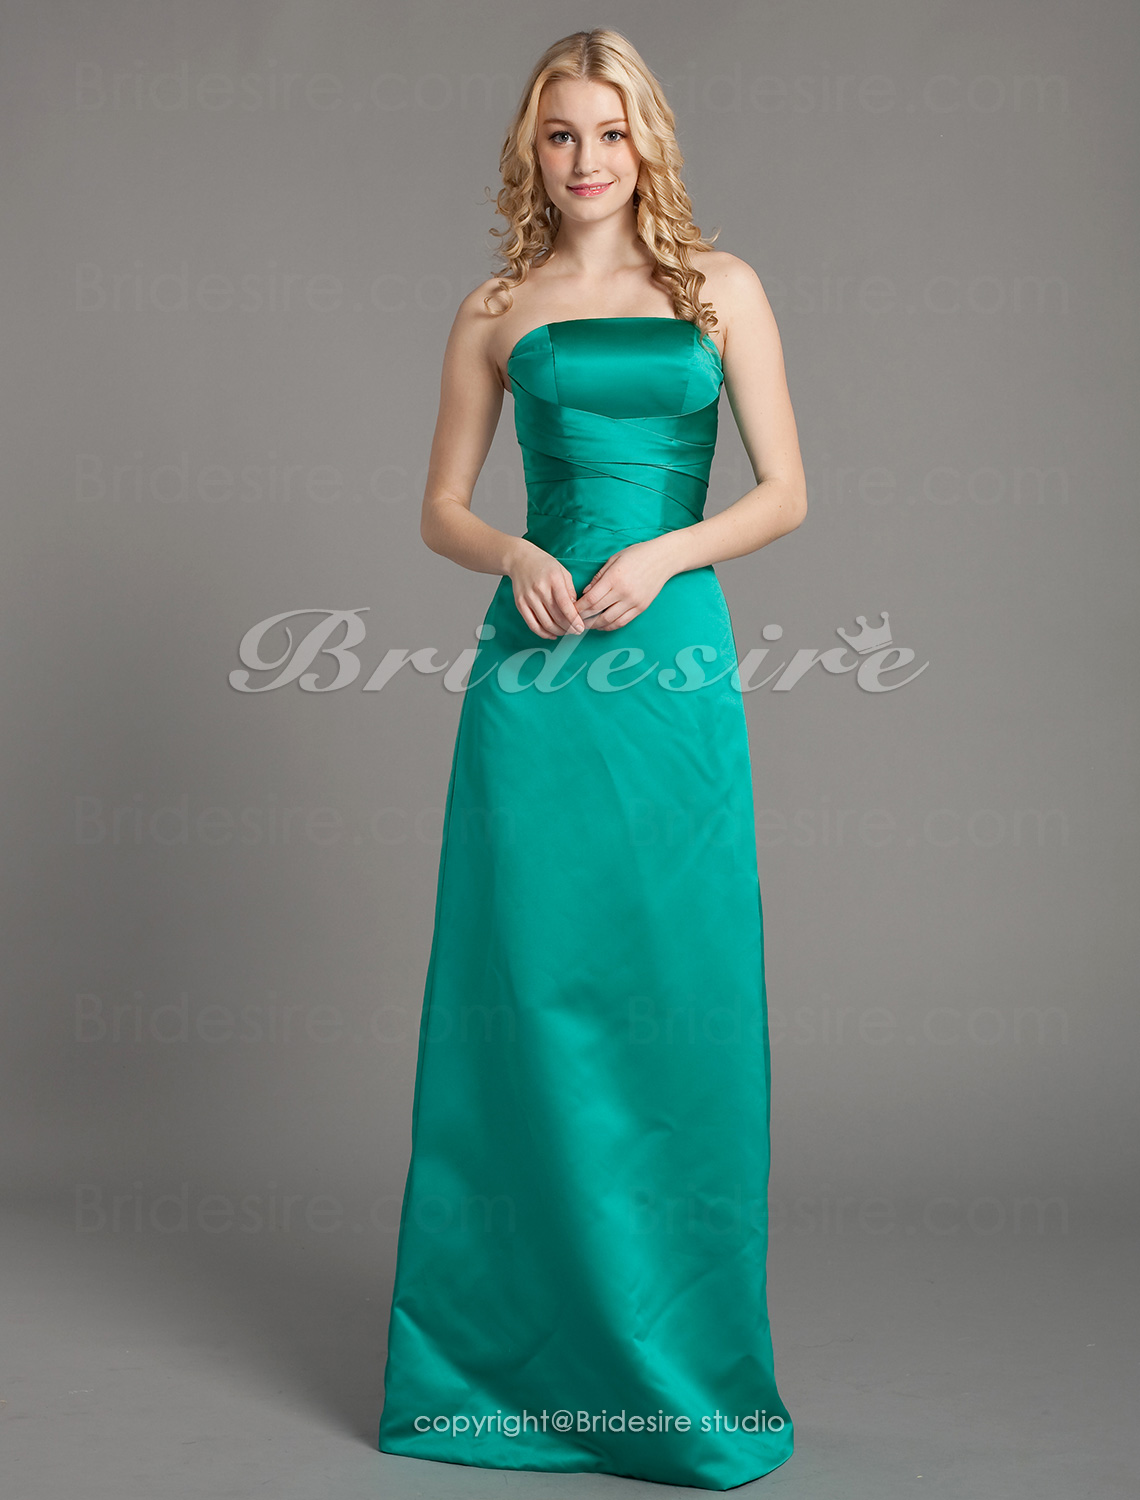 A-line Satin Floor-length Strapless Bridesmaid Dress